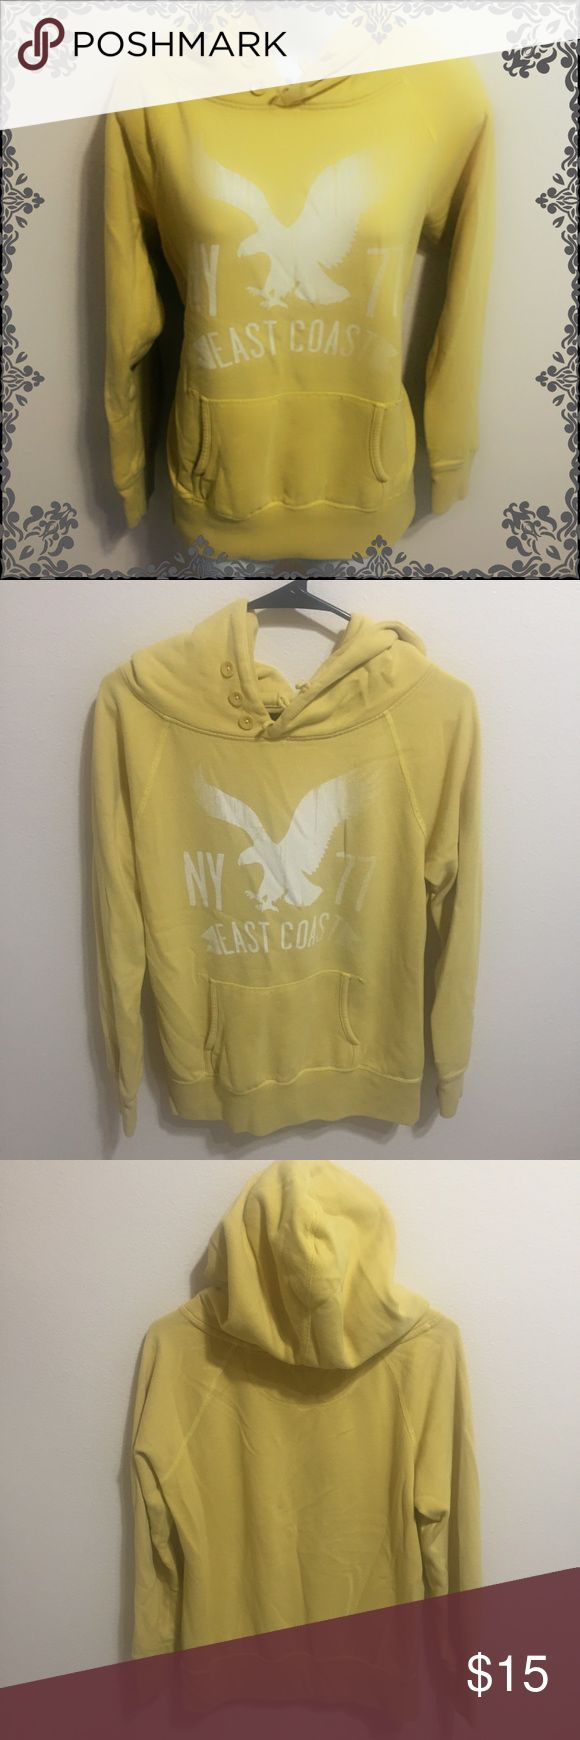 """Yellow American Eagle Hoodie American Eagle Outfitters. Size medium. Yellow hooded sweatshirt. Has three buttons at the neck and a pocket at the front. Faded white print on the front. In great condition, only defect is a small faded line stain located on the back beneath the hood (hardly noticeable; see picture). Made of 60% cotton, 40% polyester.   Measurements (approximate): Length (excluding hood): 26"""" Pit to pit: 20"""" Collar to sleeve cuff: 25"""" American Eagle Outfitters Tops Sweatshirts…"""